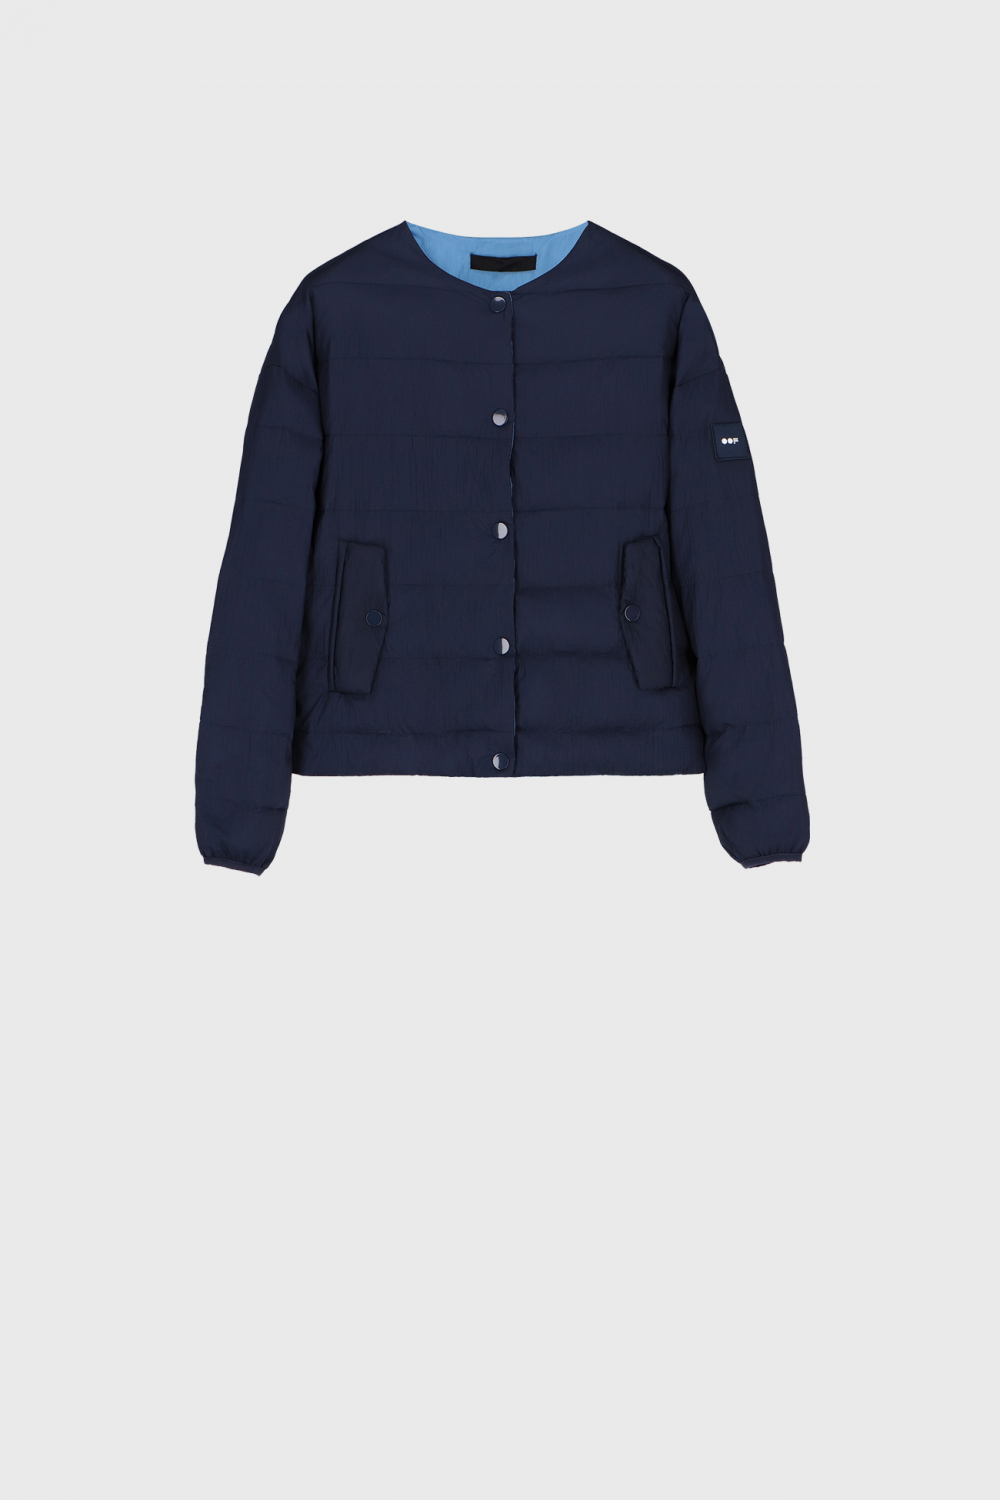 Short padded and reversible blouson in midnight blue and sky blue